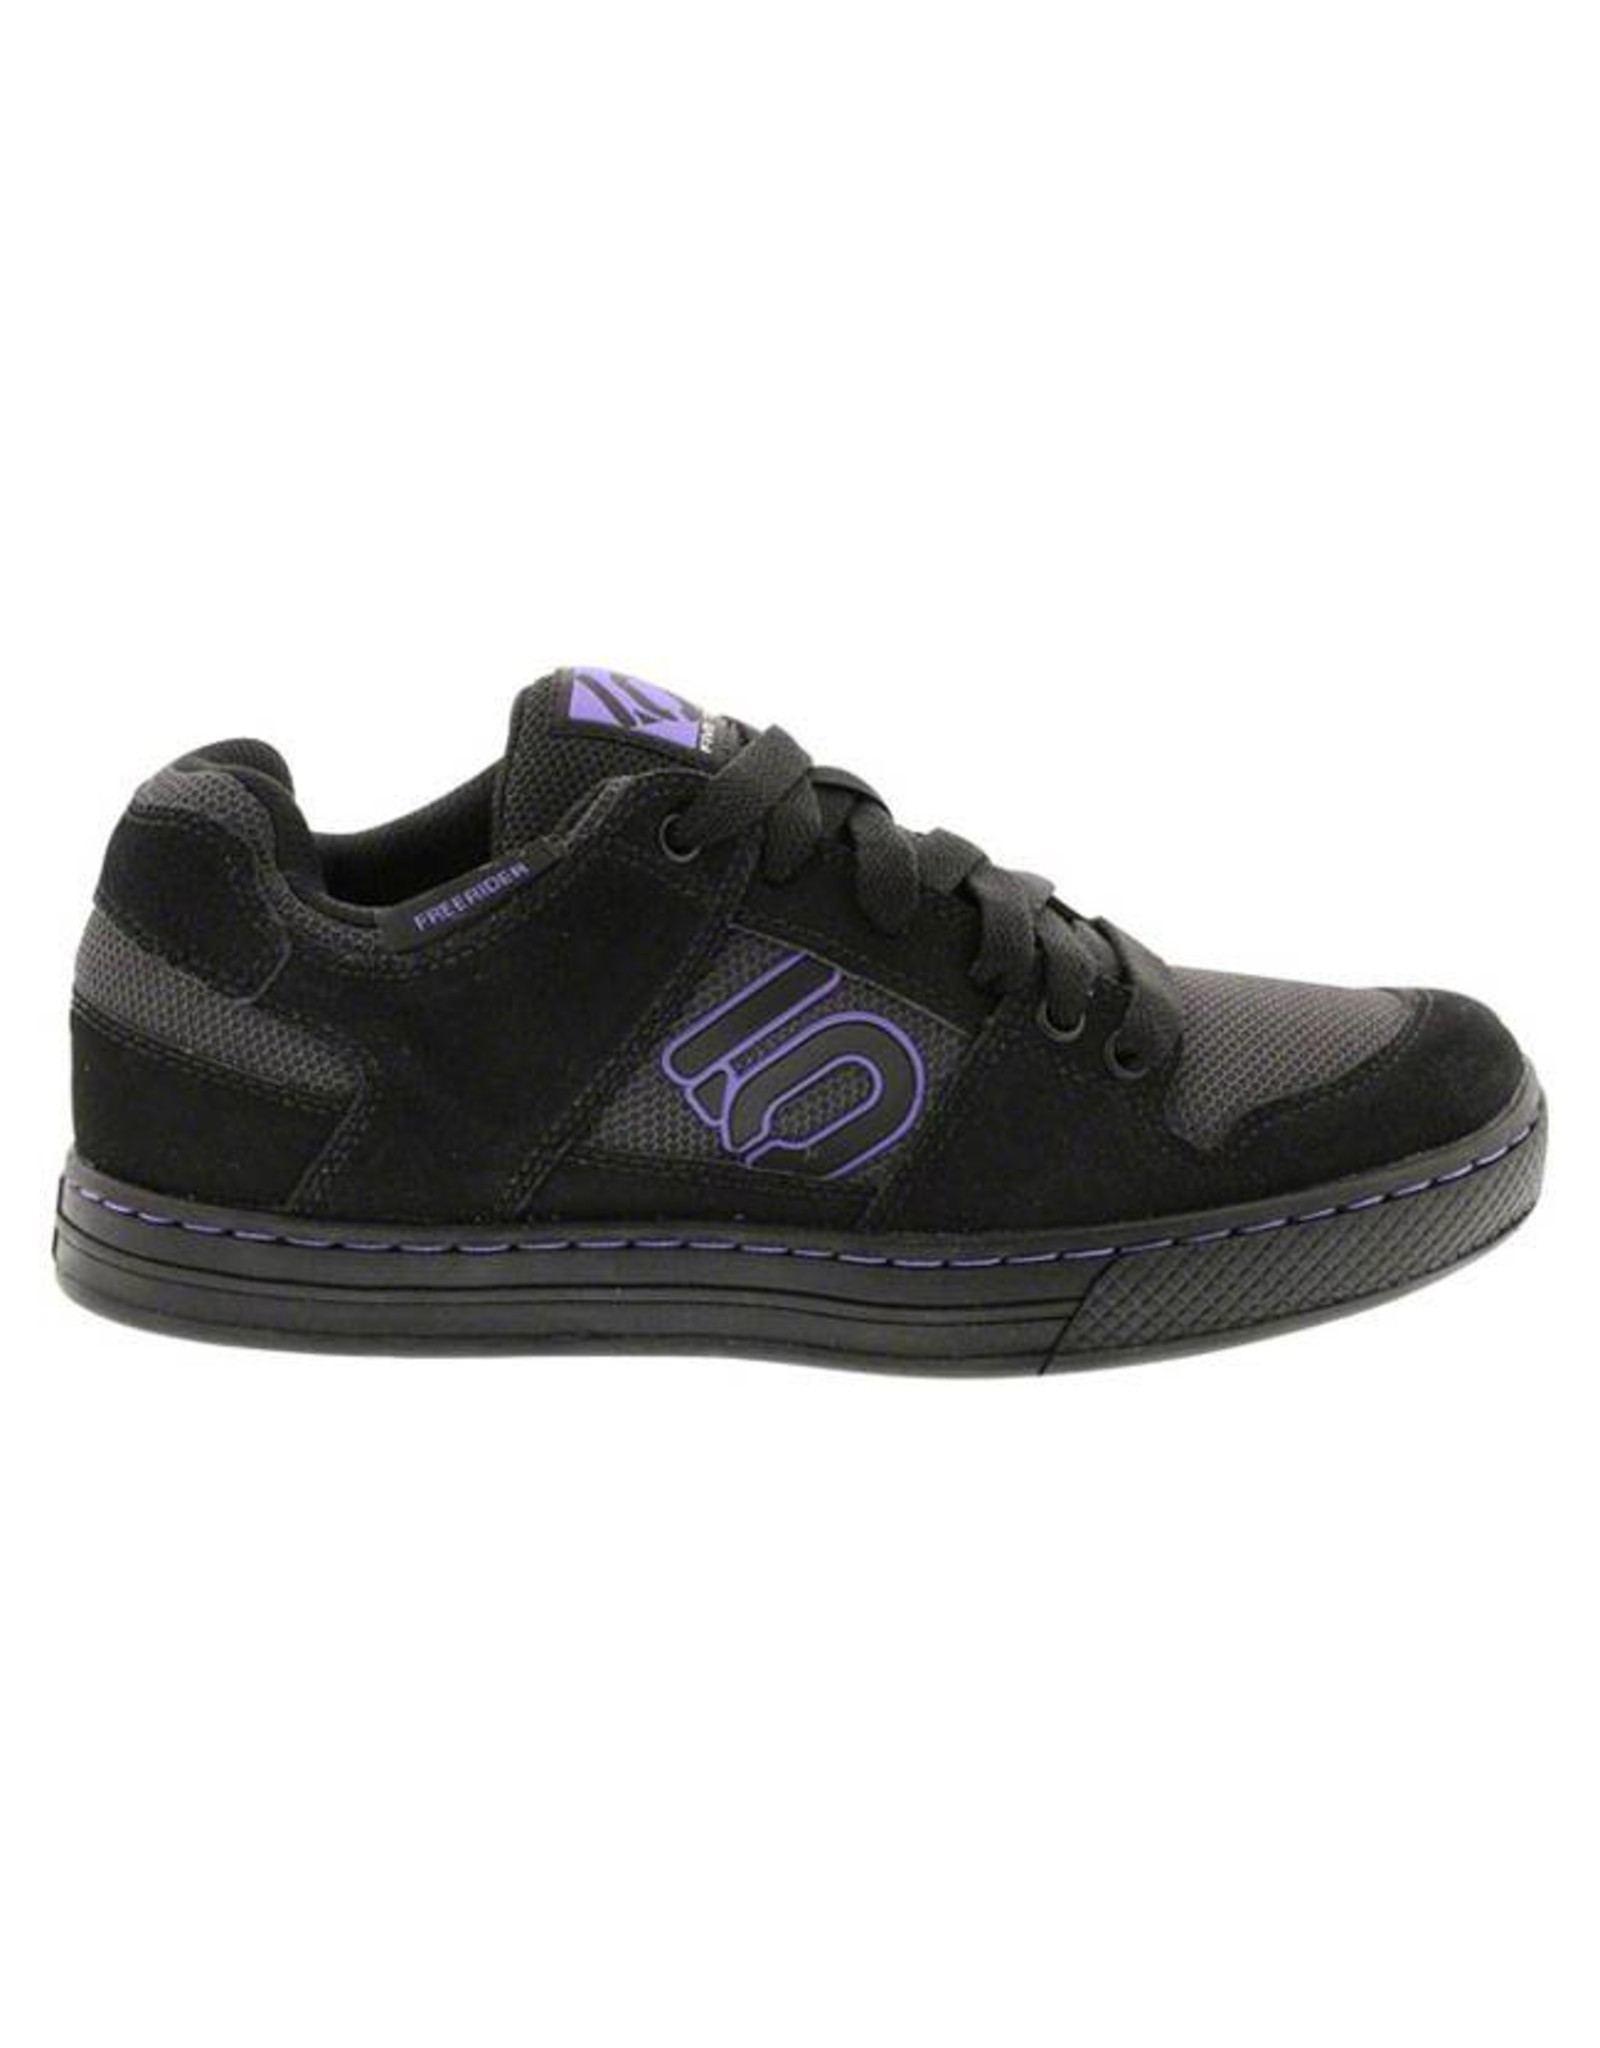 Five Ten Five Ten Freerider Women's Flat Pedal Shoe: Black/Purple 8.5